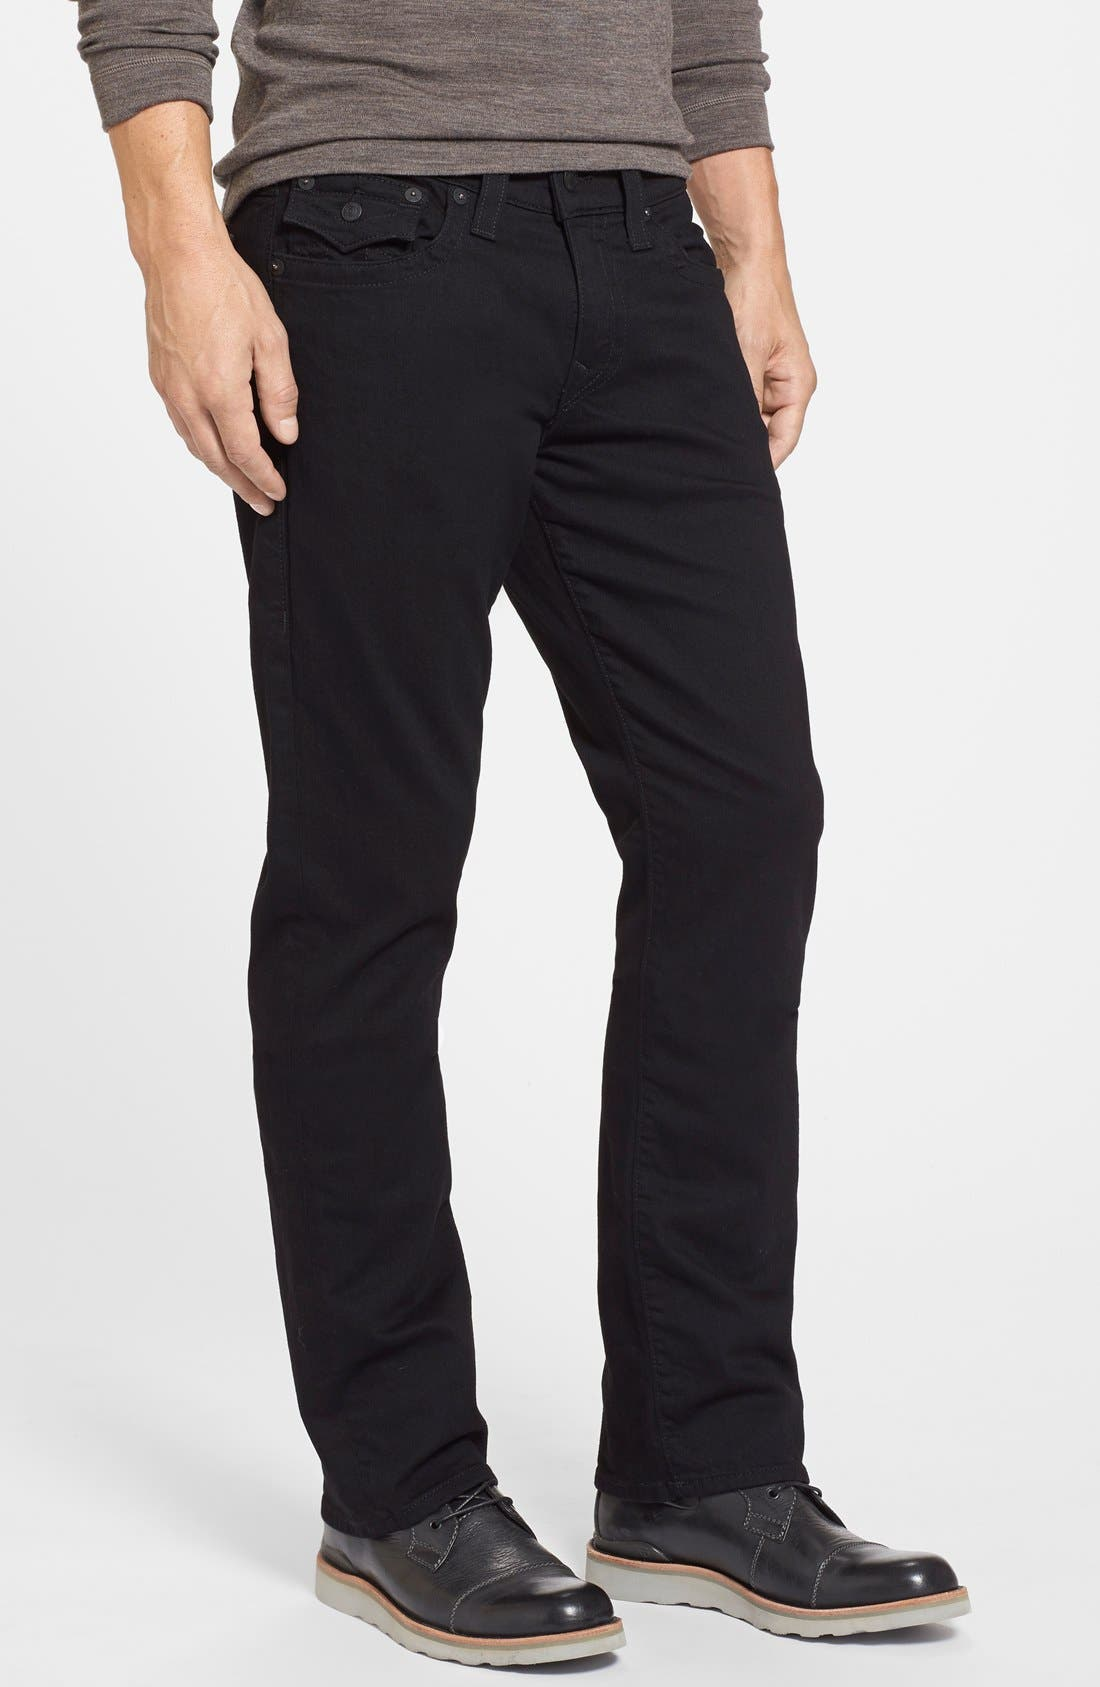 Alternate Image 3  - True Religion Brand Jeans Ricky Relaxed Fit Jeans (Midnight Black)